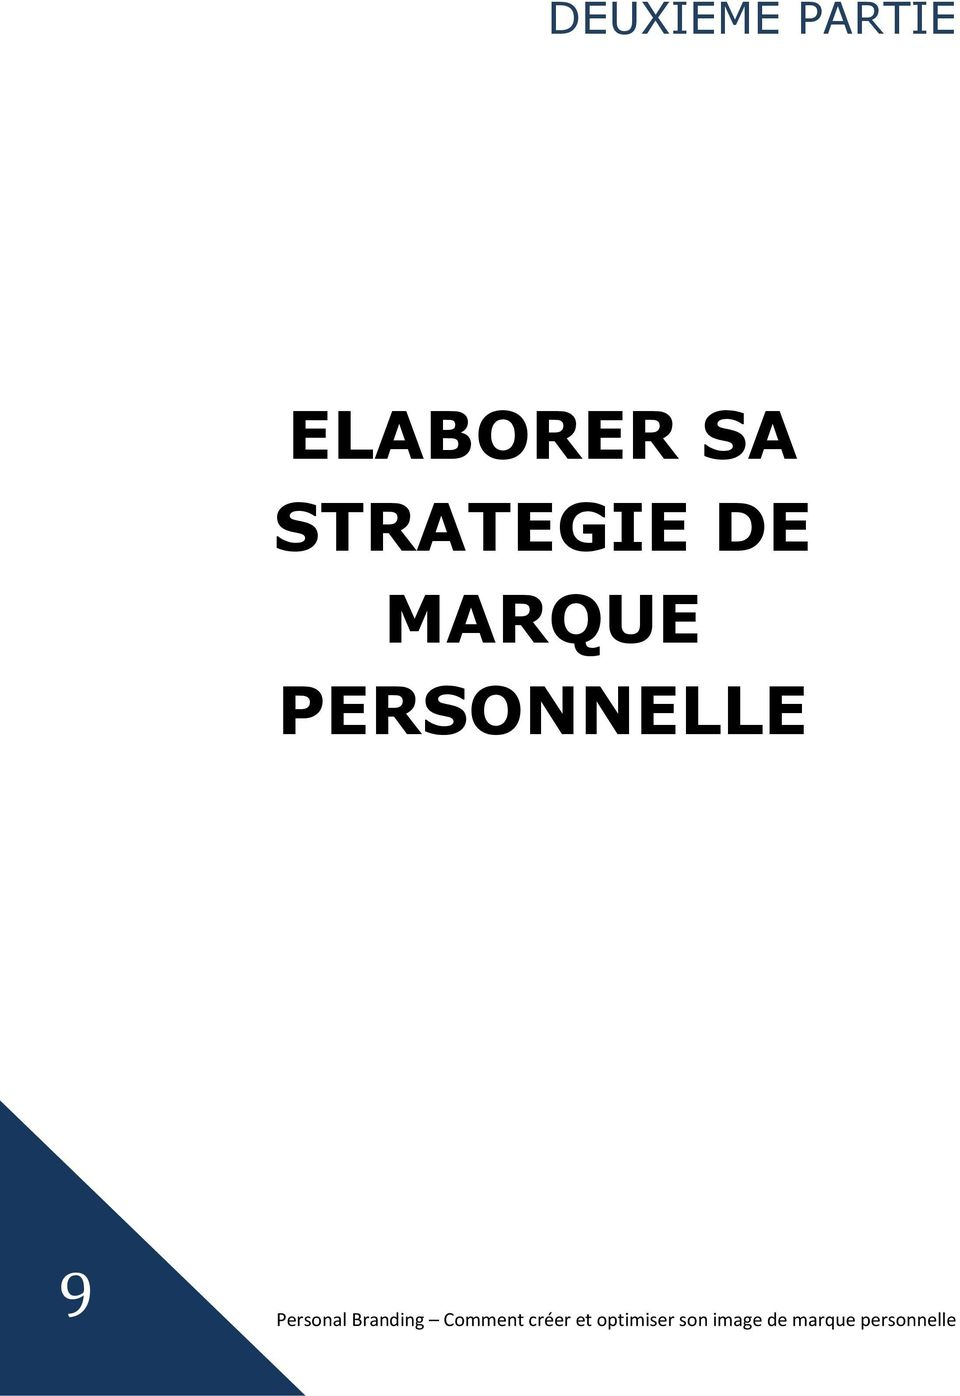 STRATEGIE DE